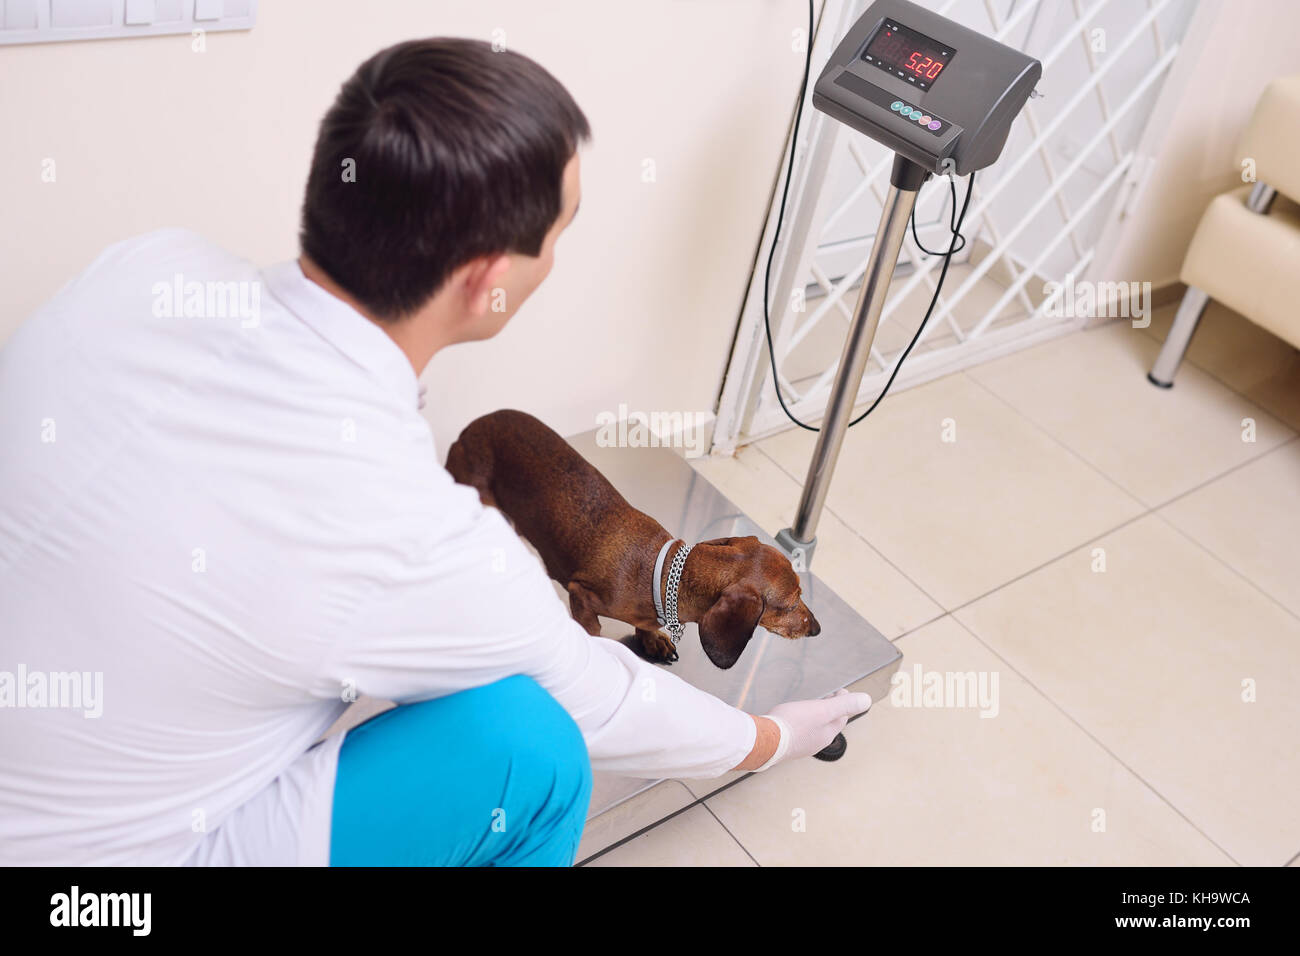 the vet weighs the dog - Stock Image